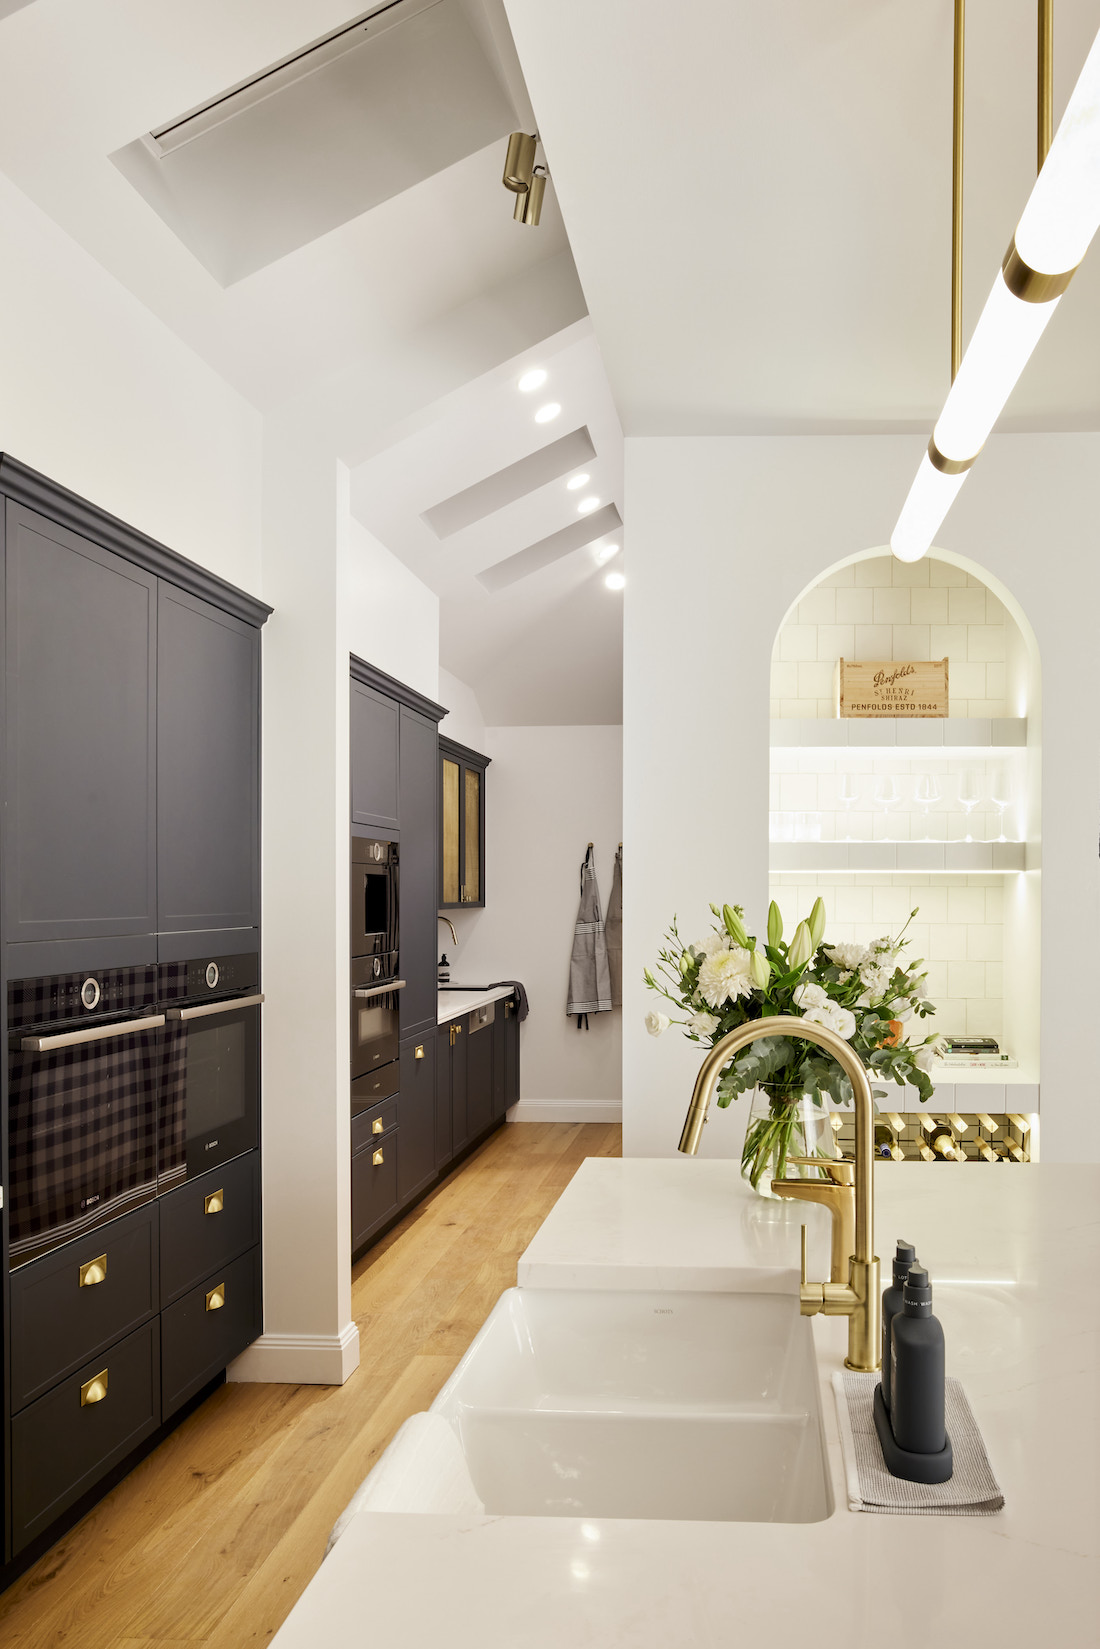 Arched bar area in kitchen